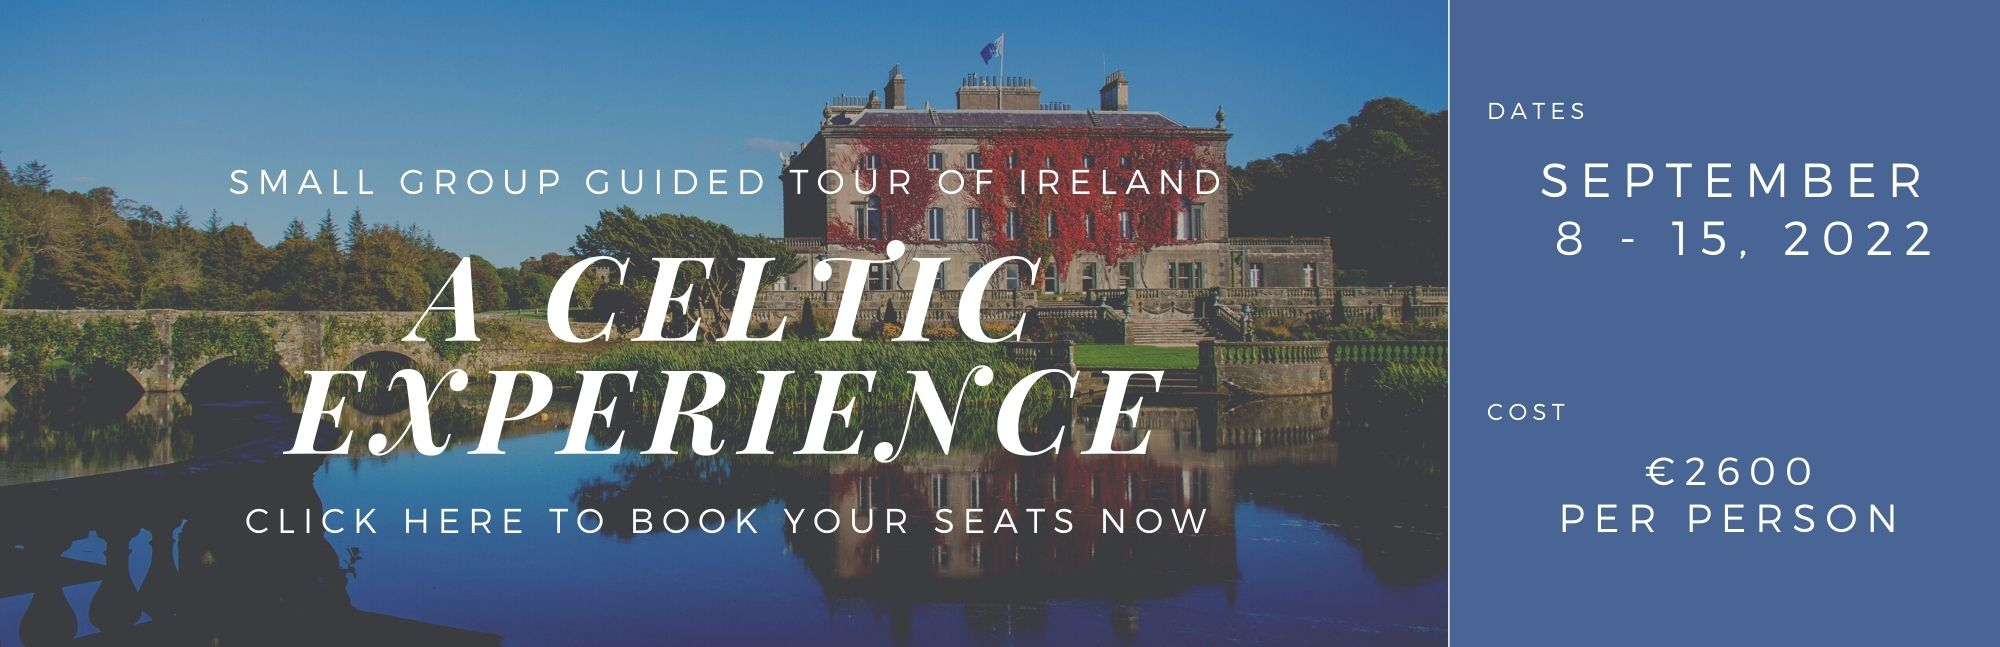 guided tour of Ireland